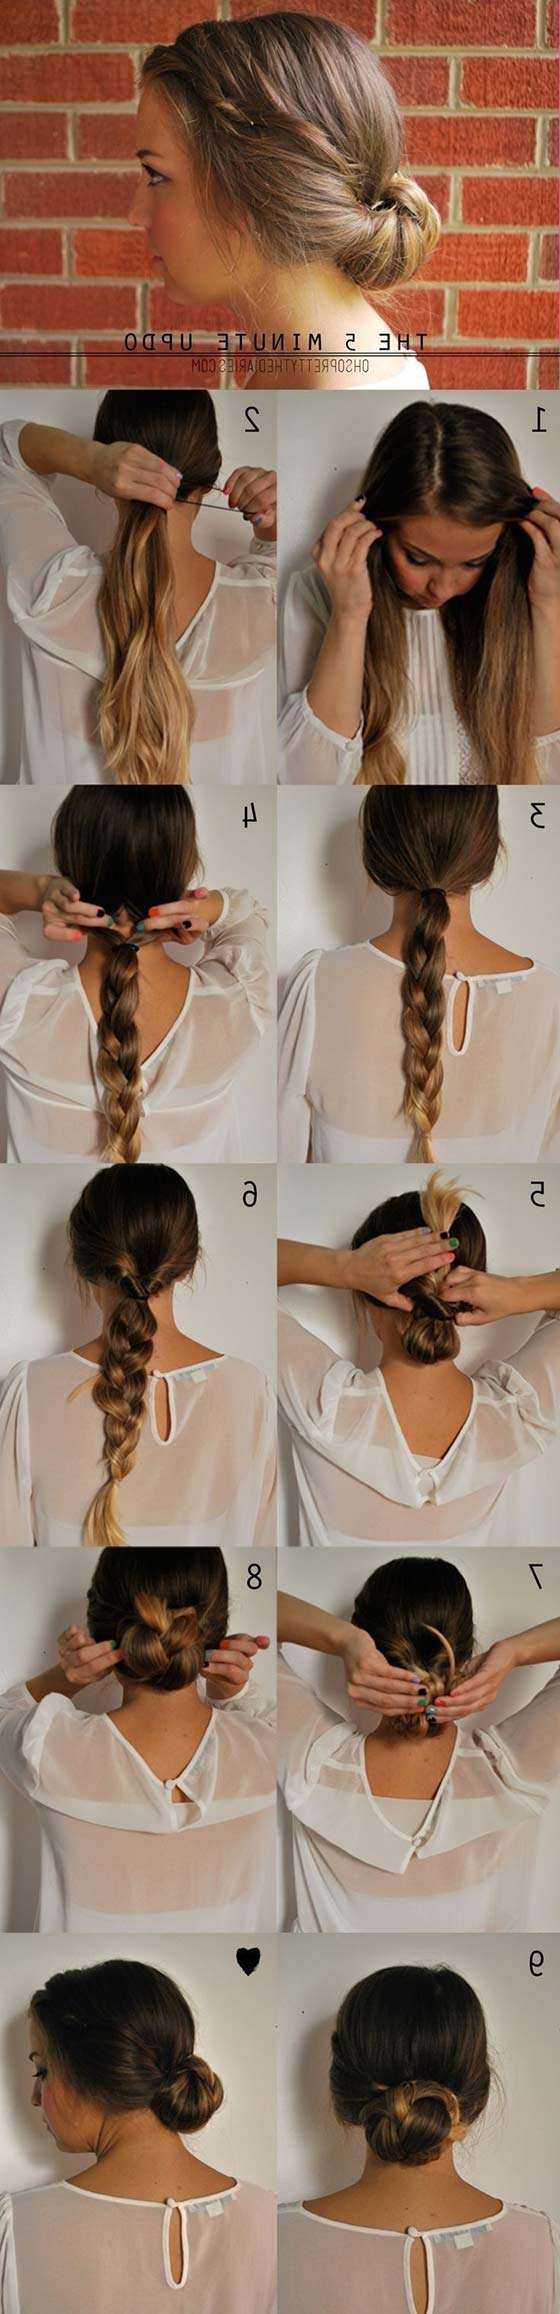 40 Top Hairstyles For Women With Thick Hair Throughout Fashionable Extra Thick Braided Bun Hairstyles (View 5 of 20)